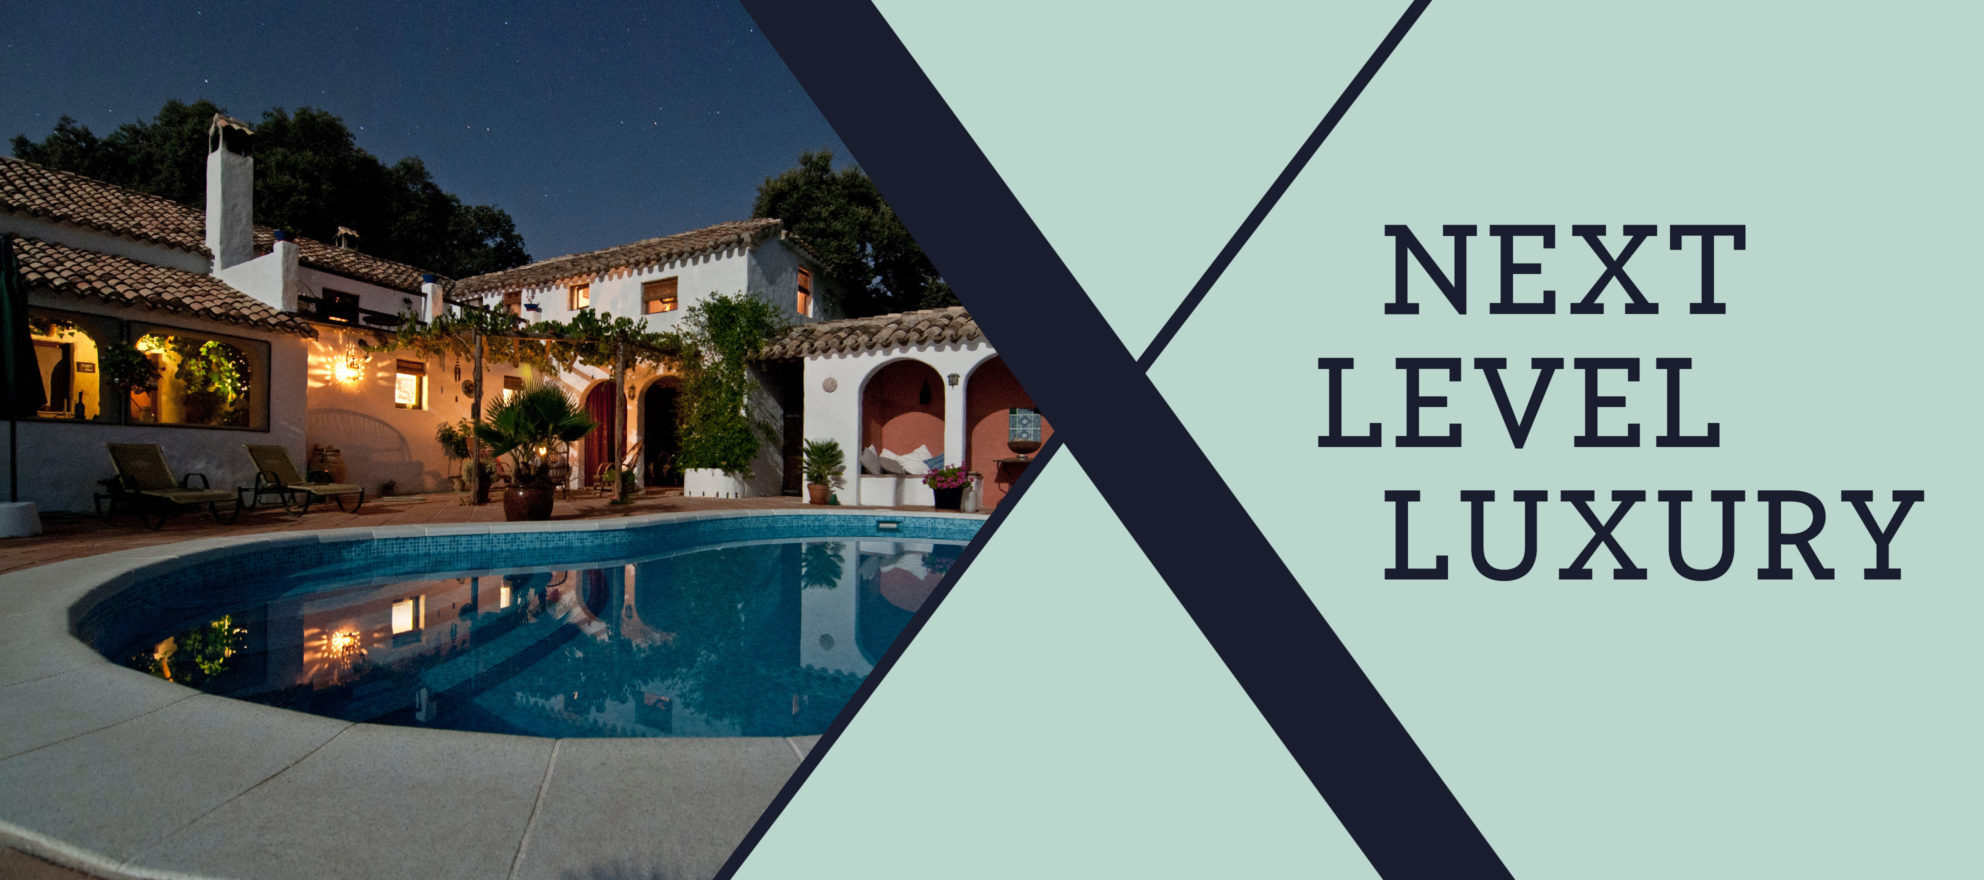 Luxury sellers won't budge on price? Share these facts